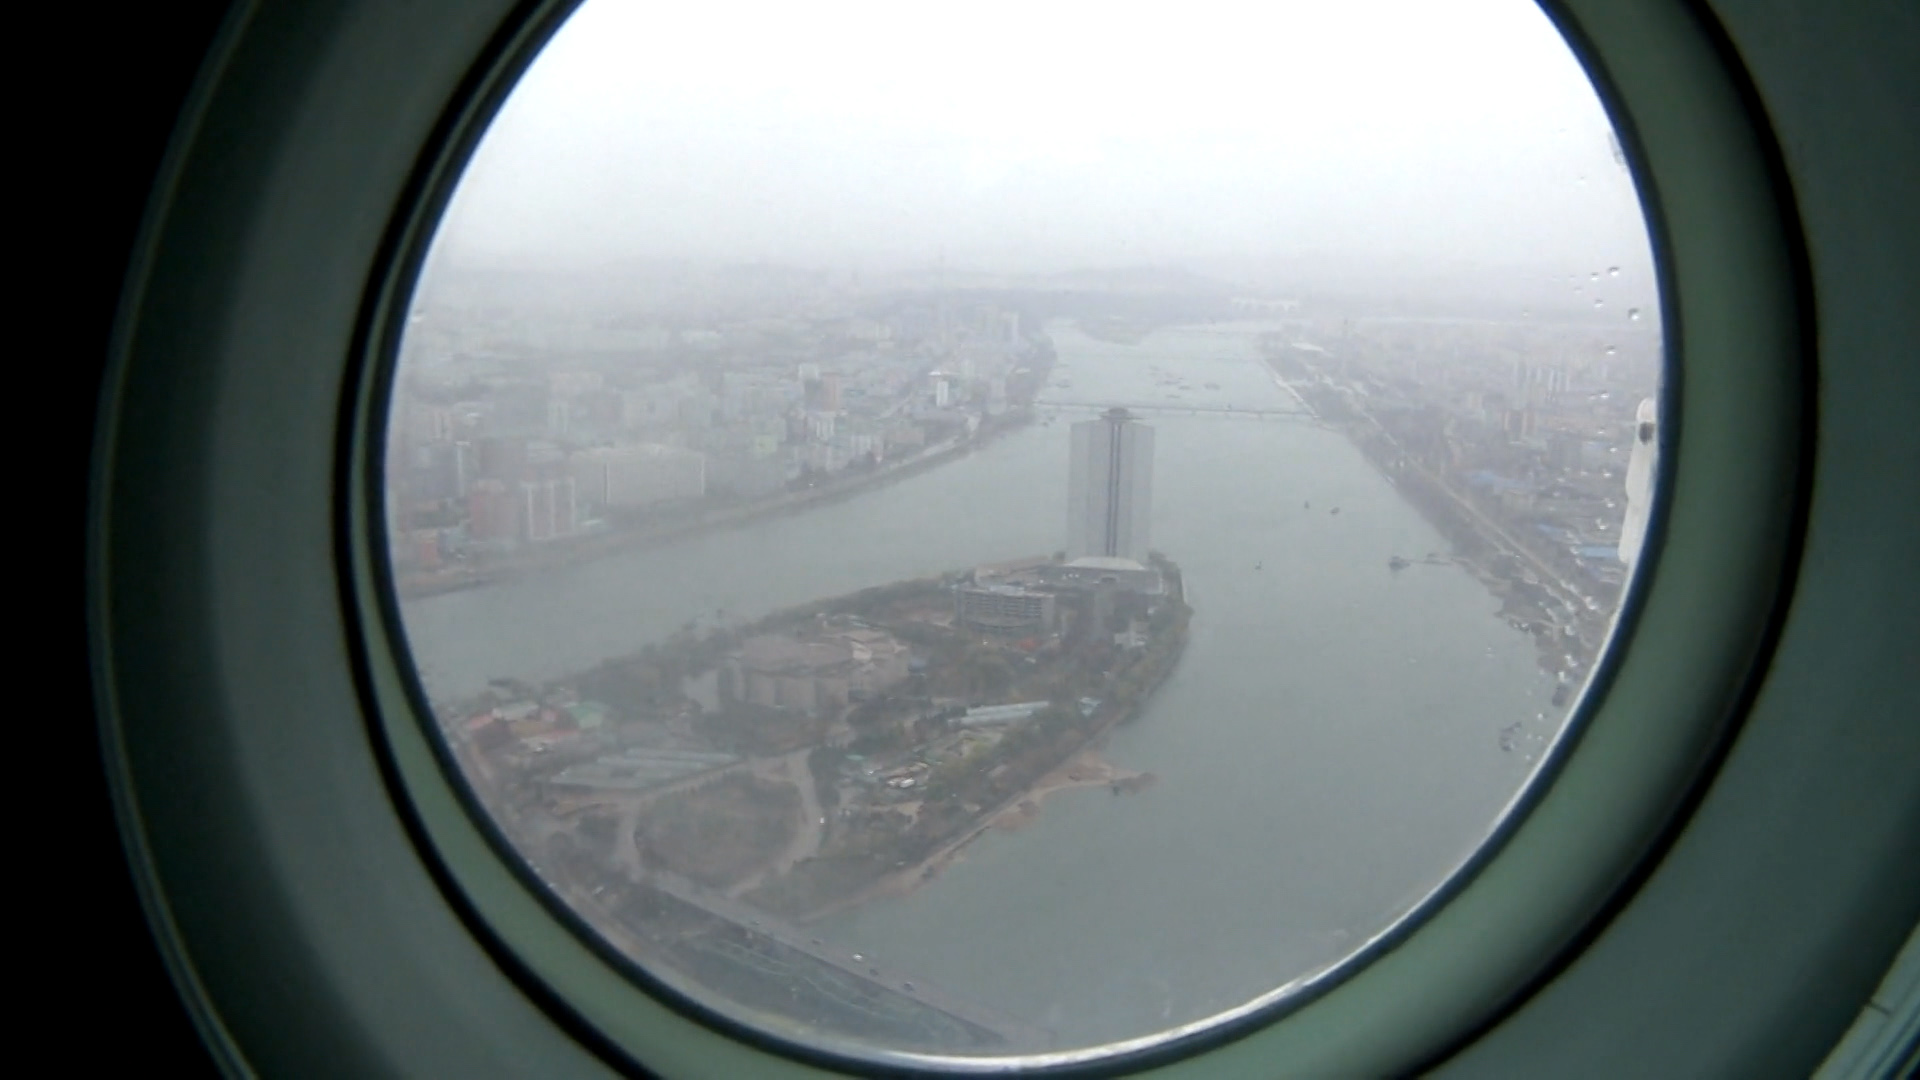 North Korea Tourism: Check Out Pyongyang From Sky For First Time